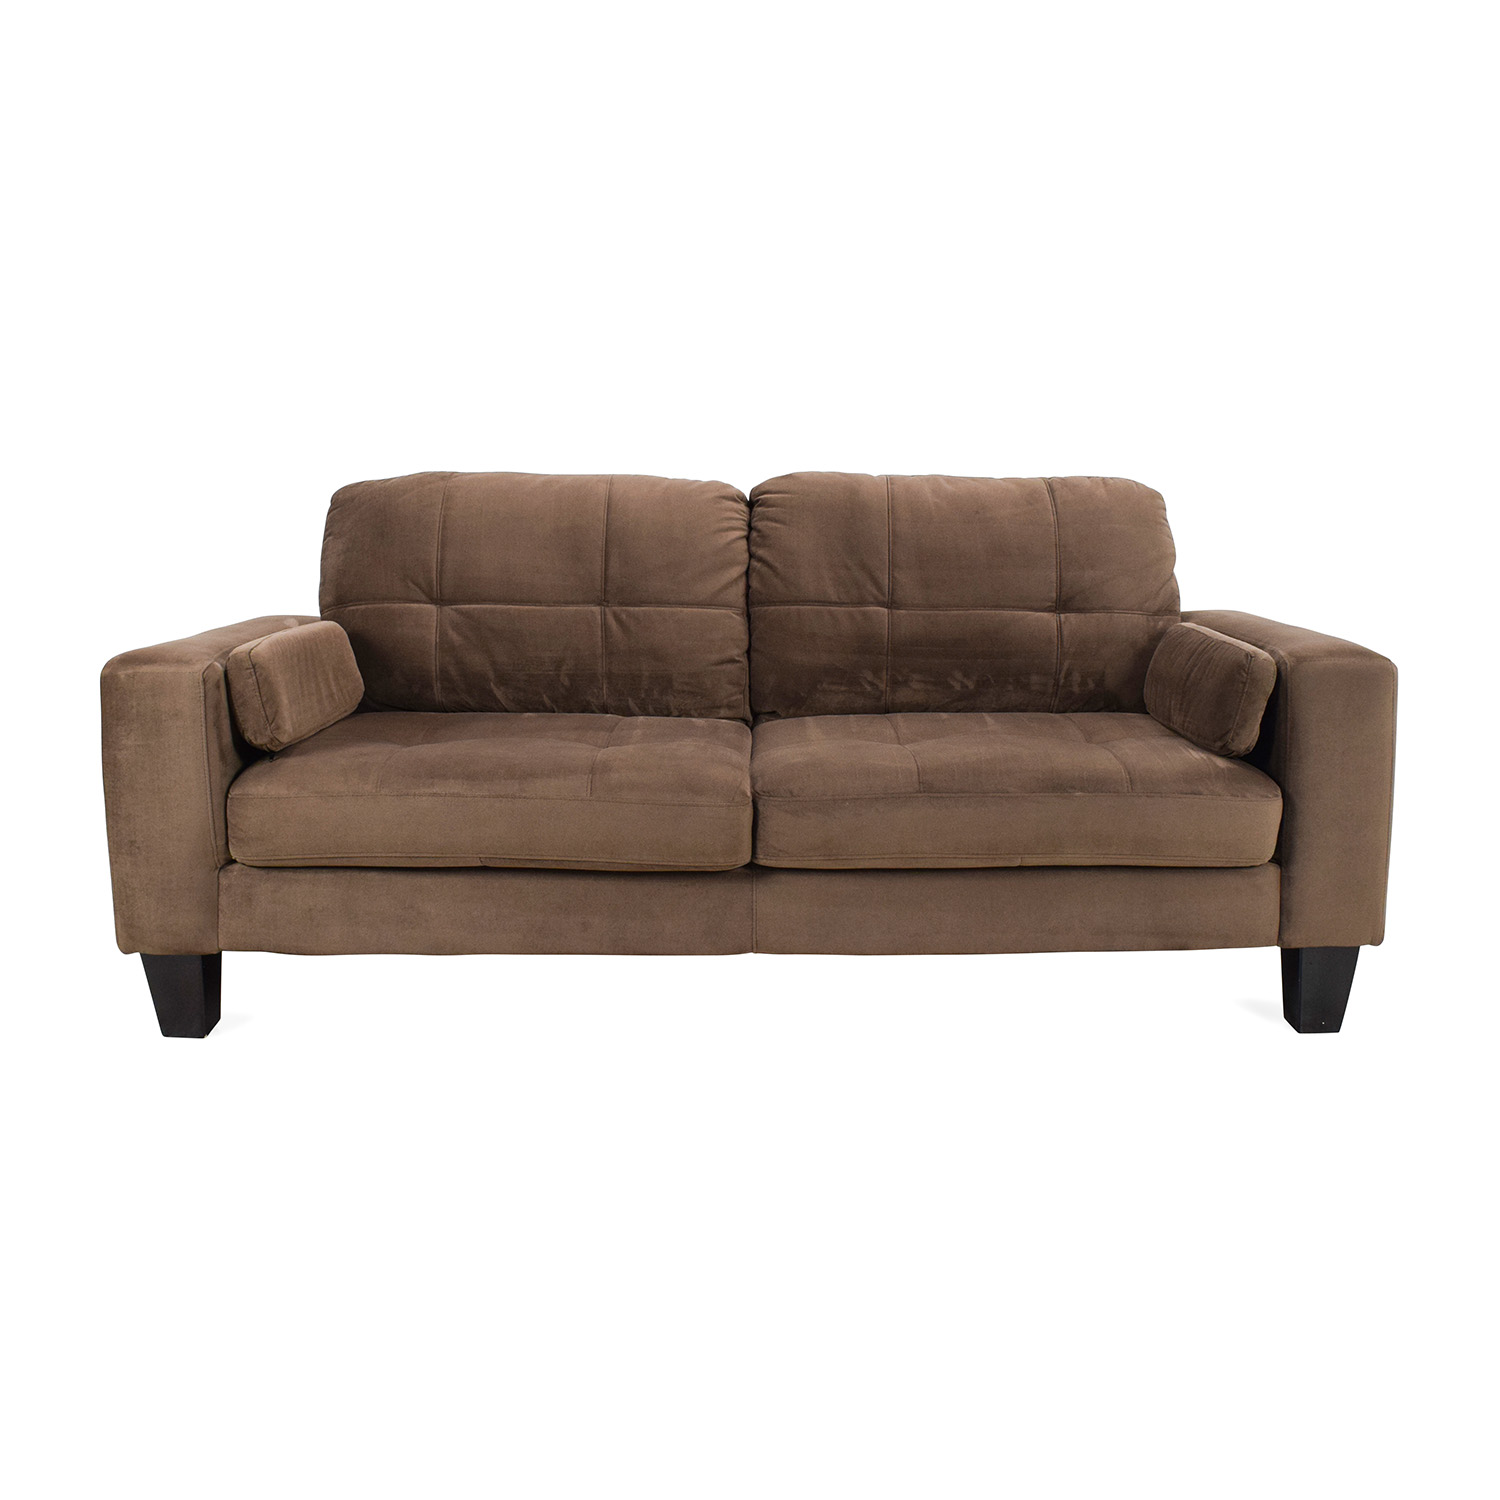 jennifer convertibles leather reclining sofa harden table sofas fantastic with